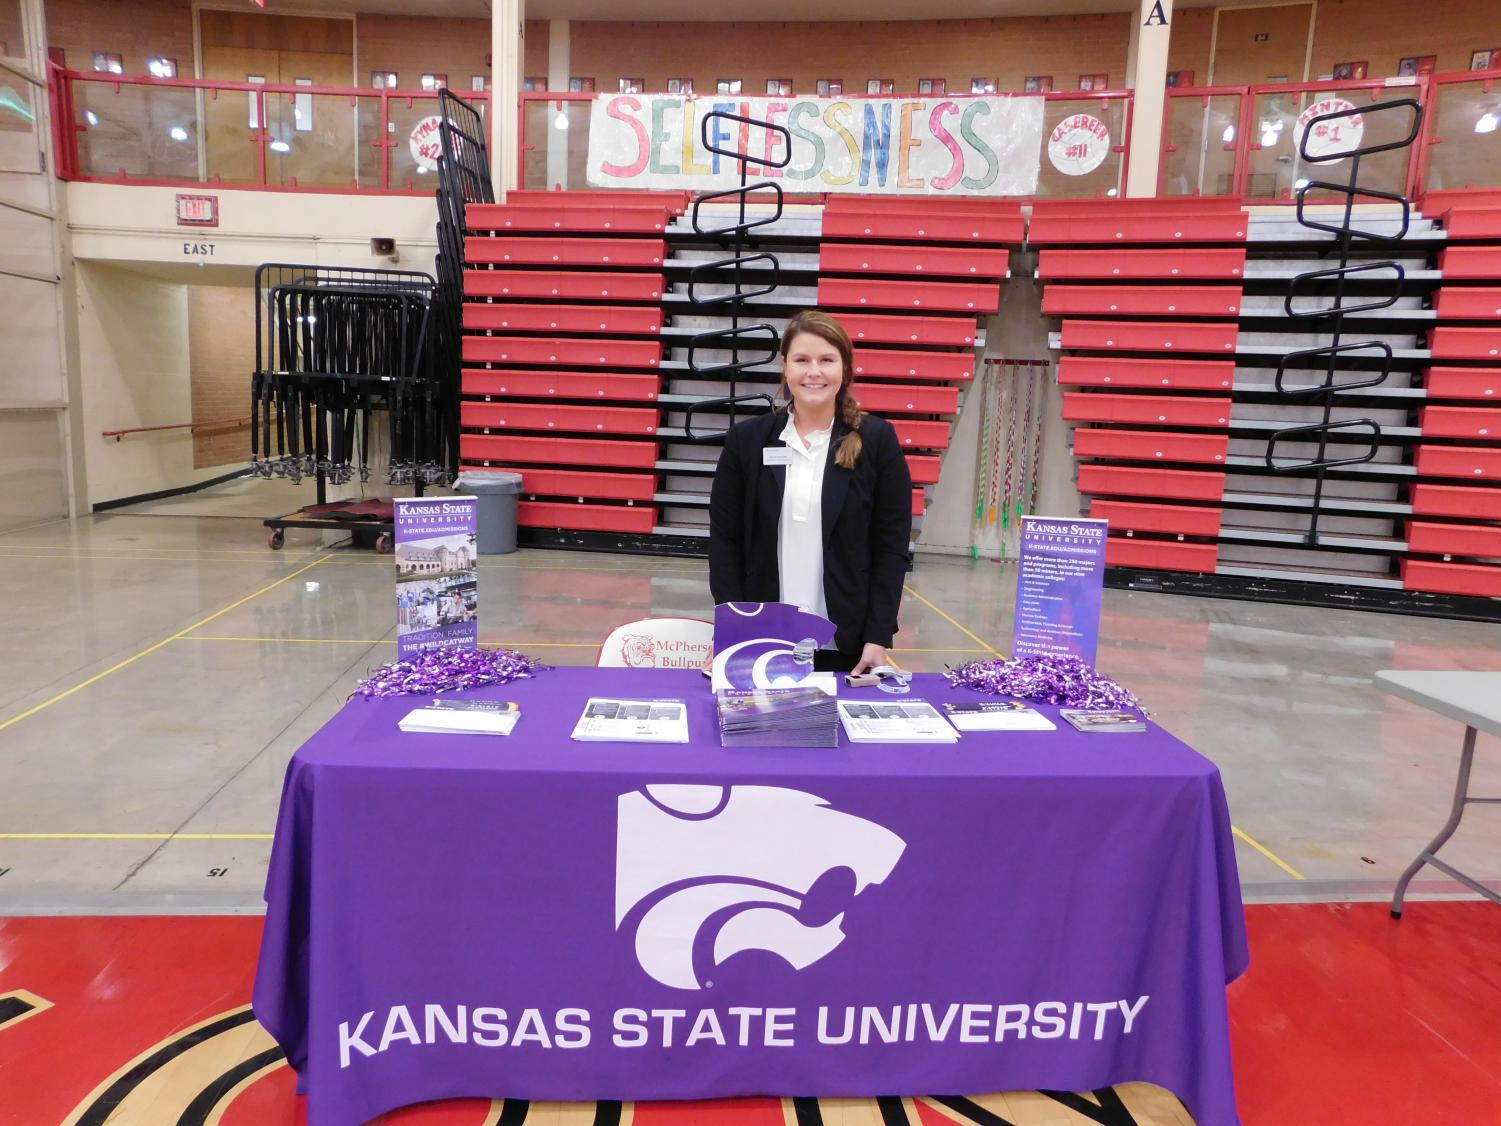 Kansas+State+University+representative+poses+for+her+photo+and+her+and+her+booth.